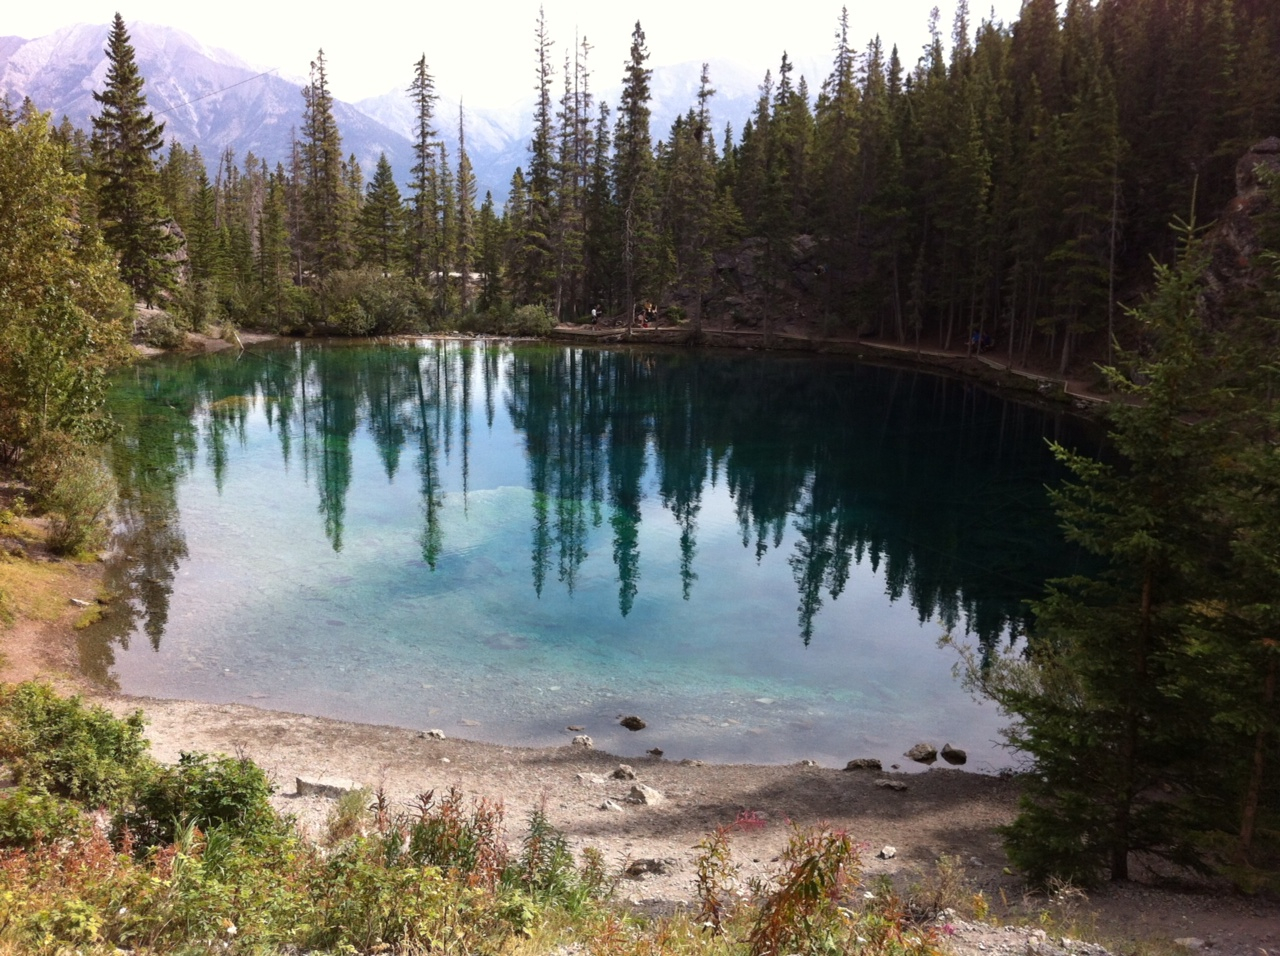 A postcard view of the upper Grassi Lake with its crystal clear aquamarine colour water.  Yes it looks surreal.